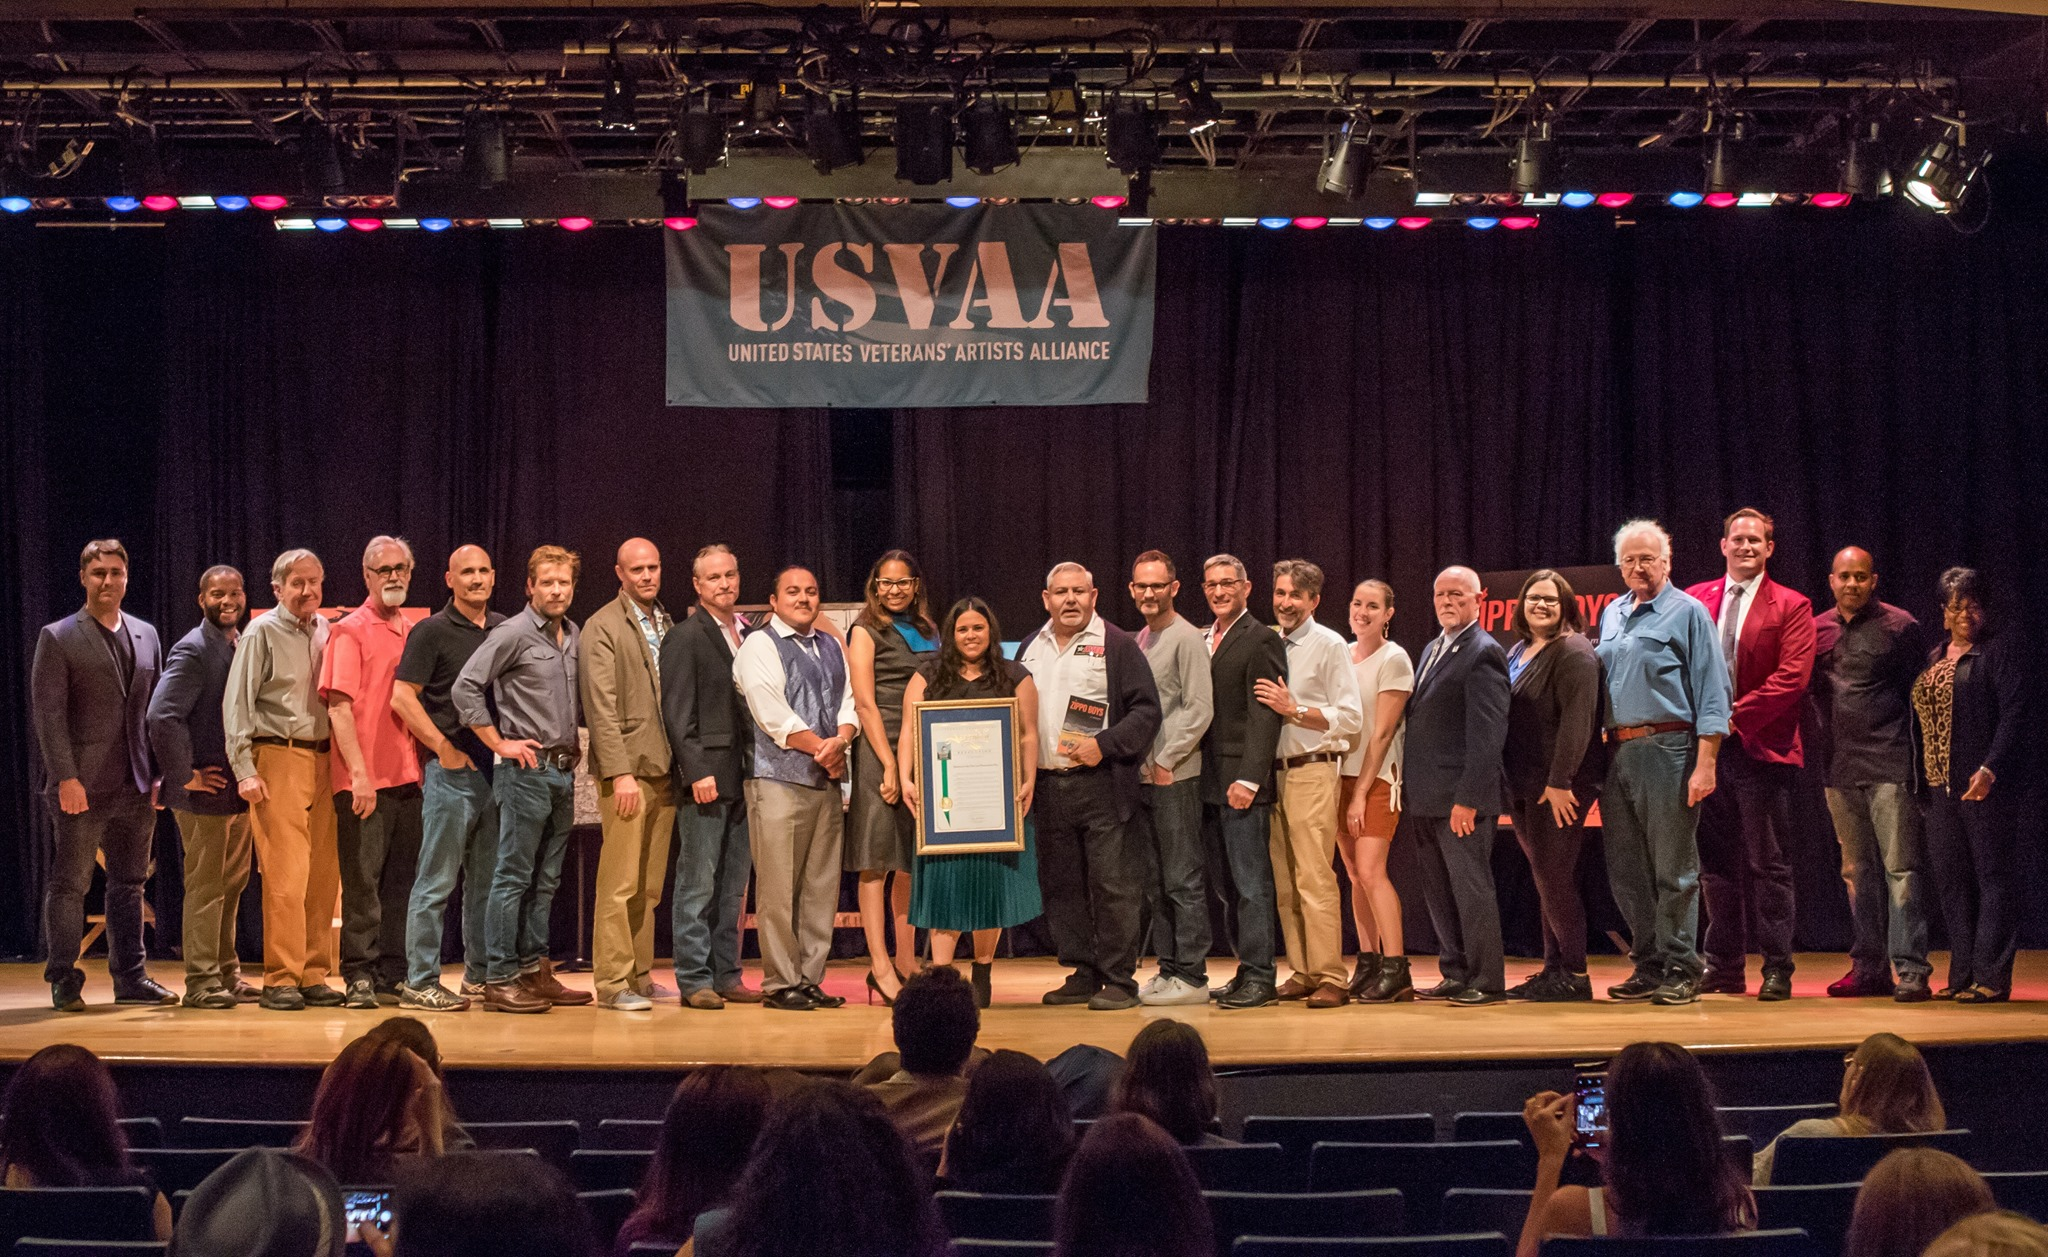 USVAA New Works 2019 / Veterans in the Arts and Humanities Day